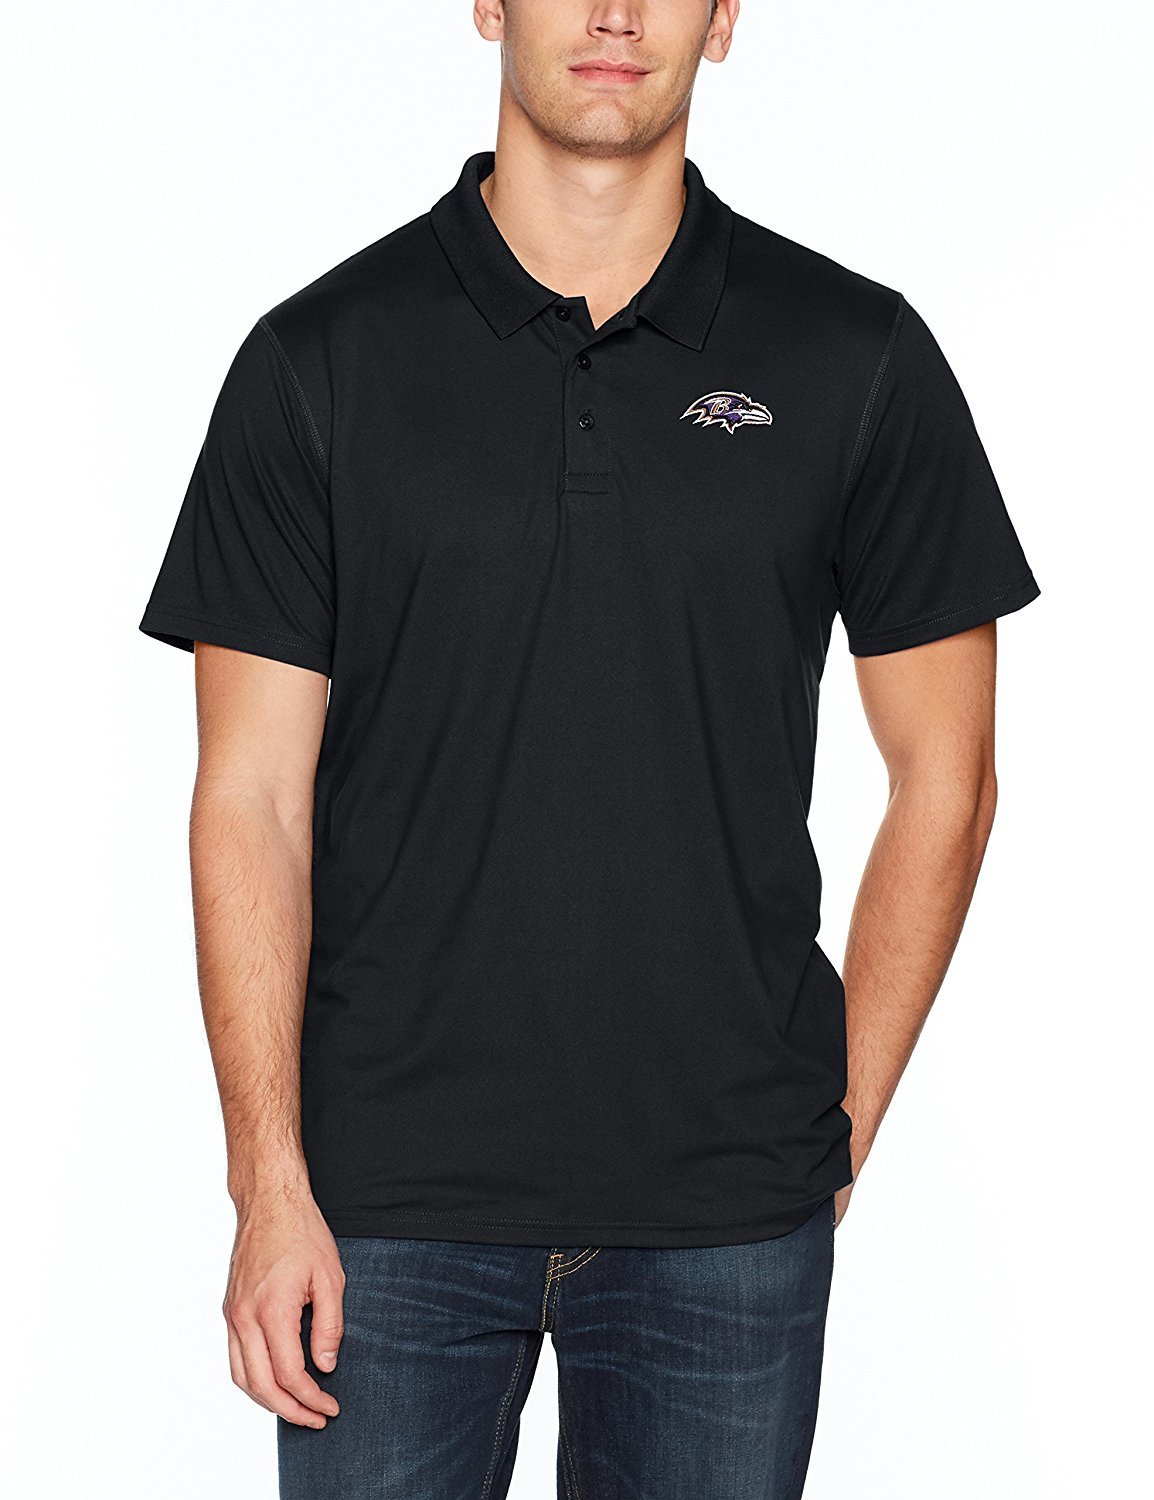 NFL Baltimore Ravens Men's Sueded Short Sleeve Polo Shirt, Logo, Small